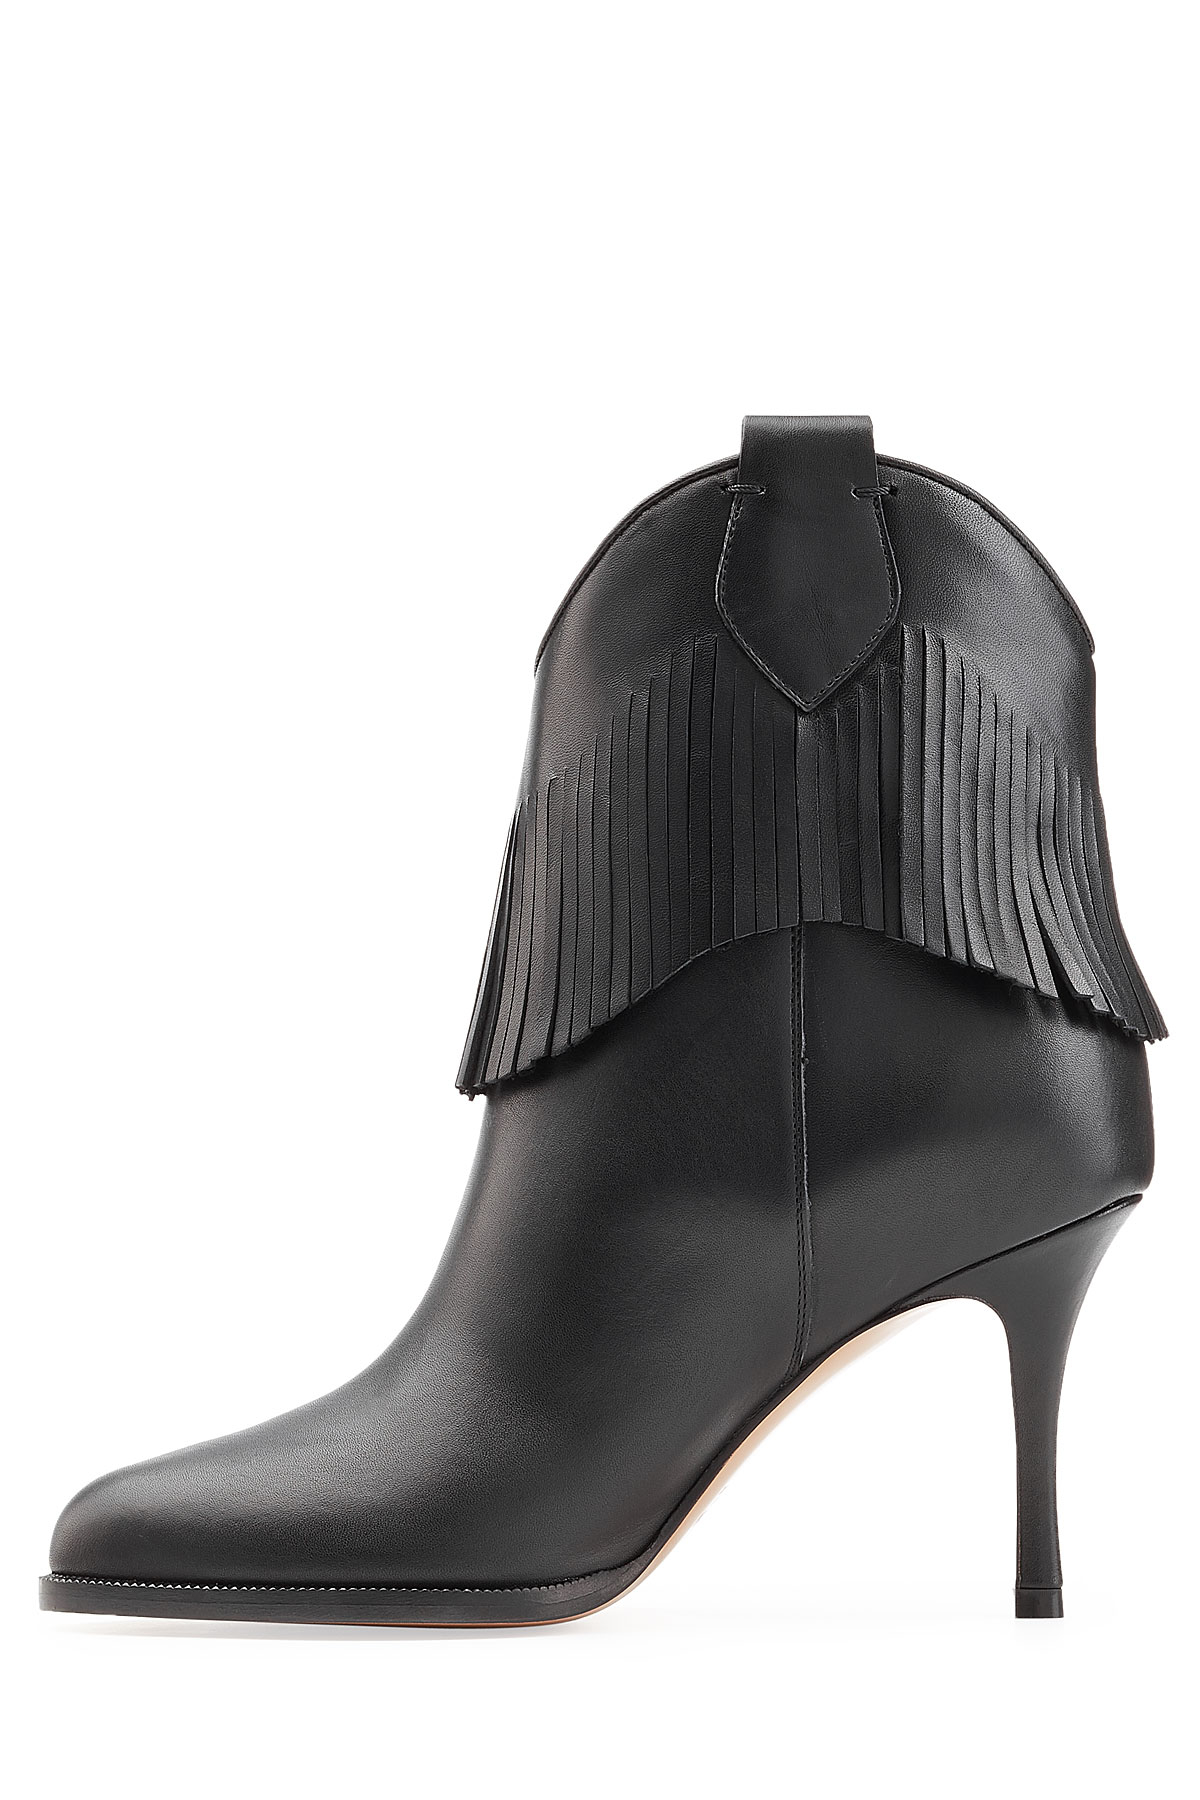 valentino leather boots with fringe in black lyst